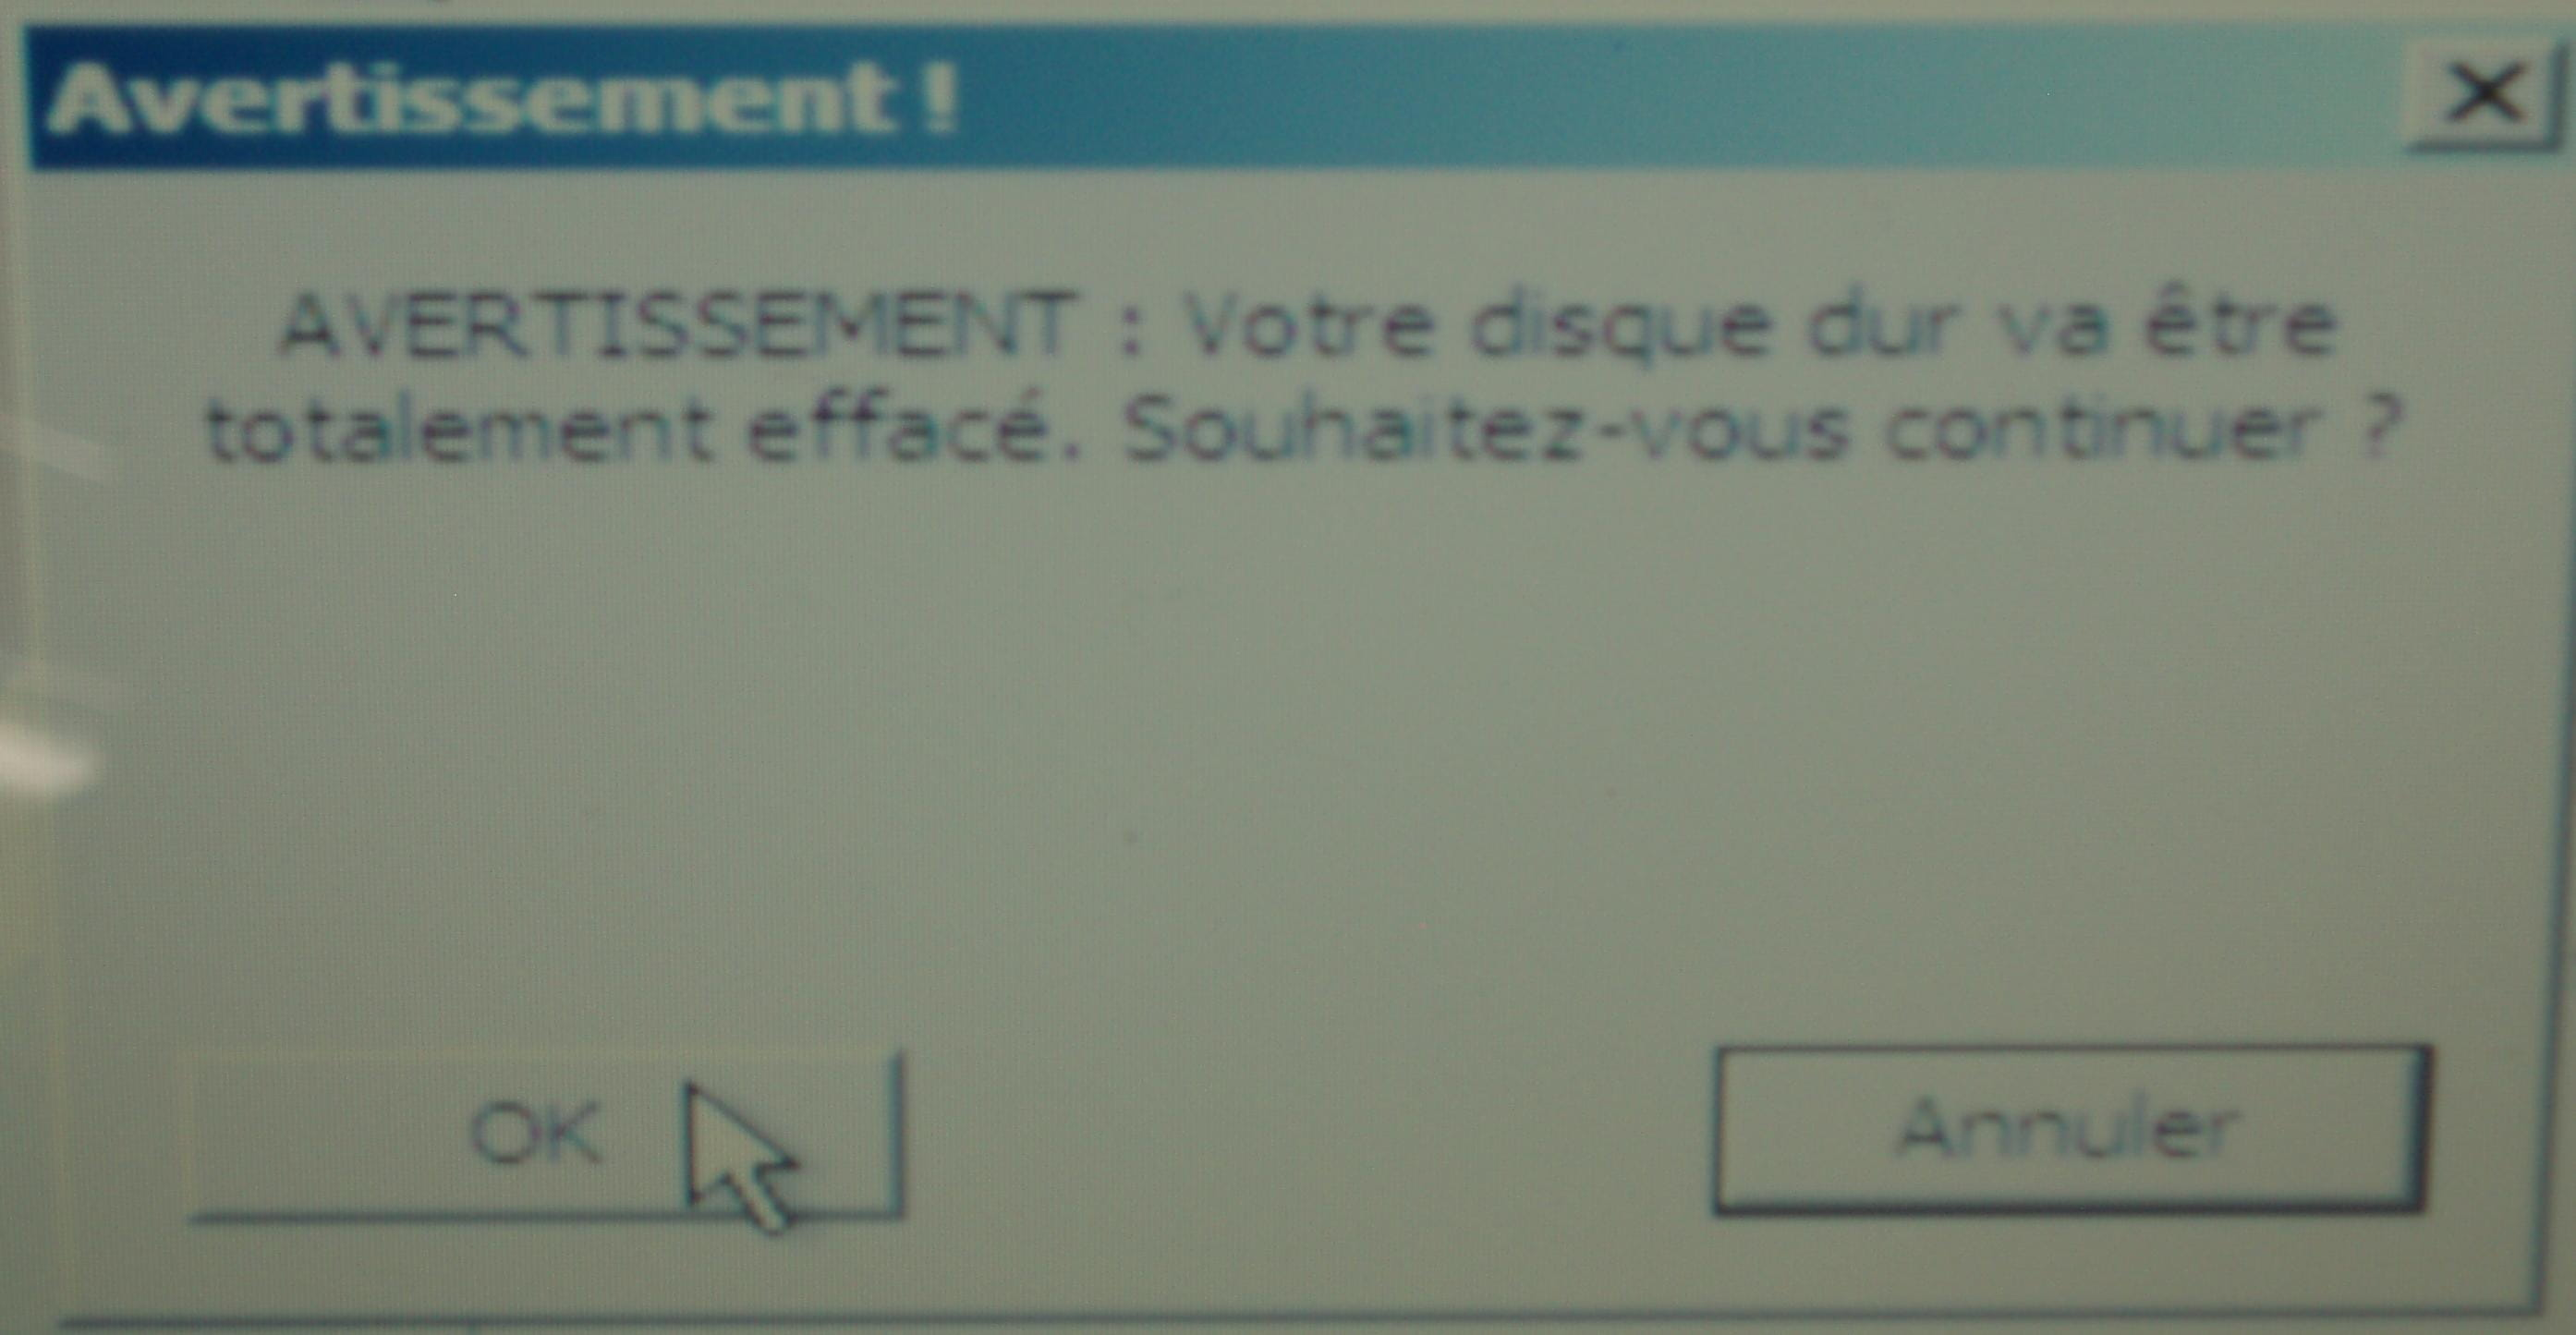 Comment Restaurer Son Ordinateur Windows Vista A L Etat D Usine